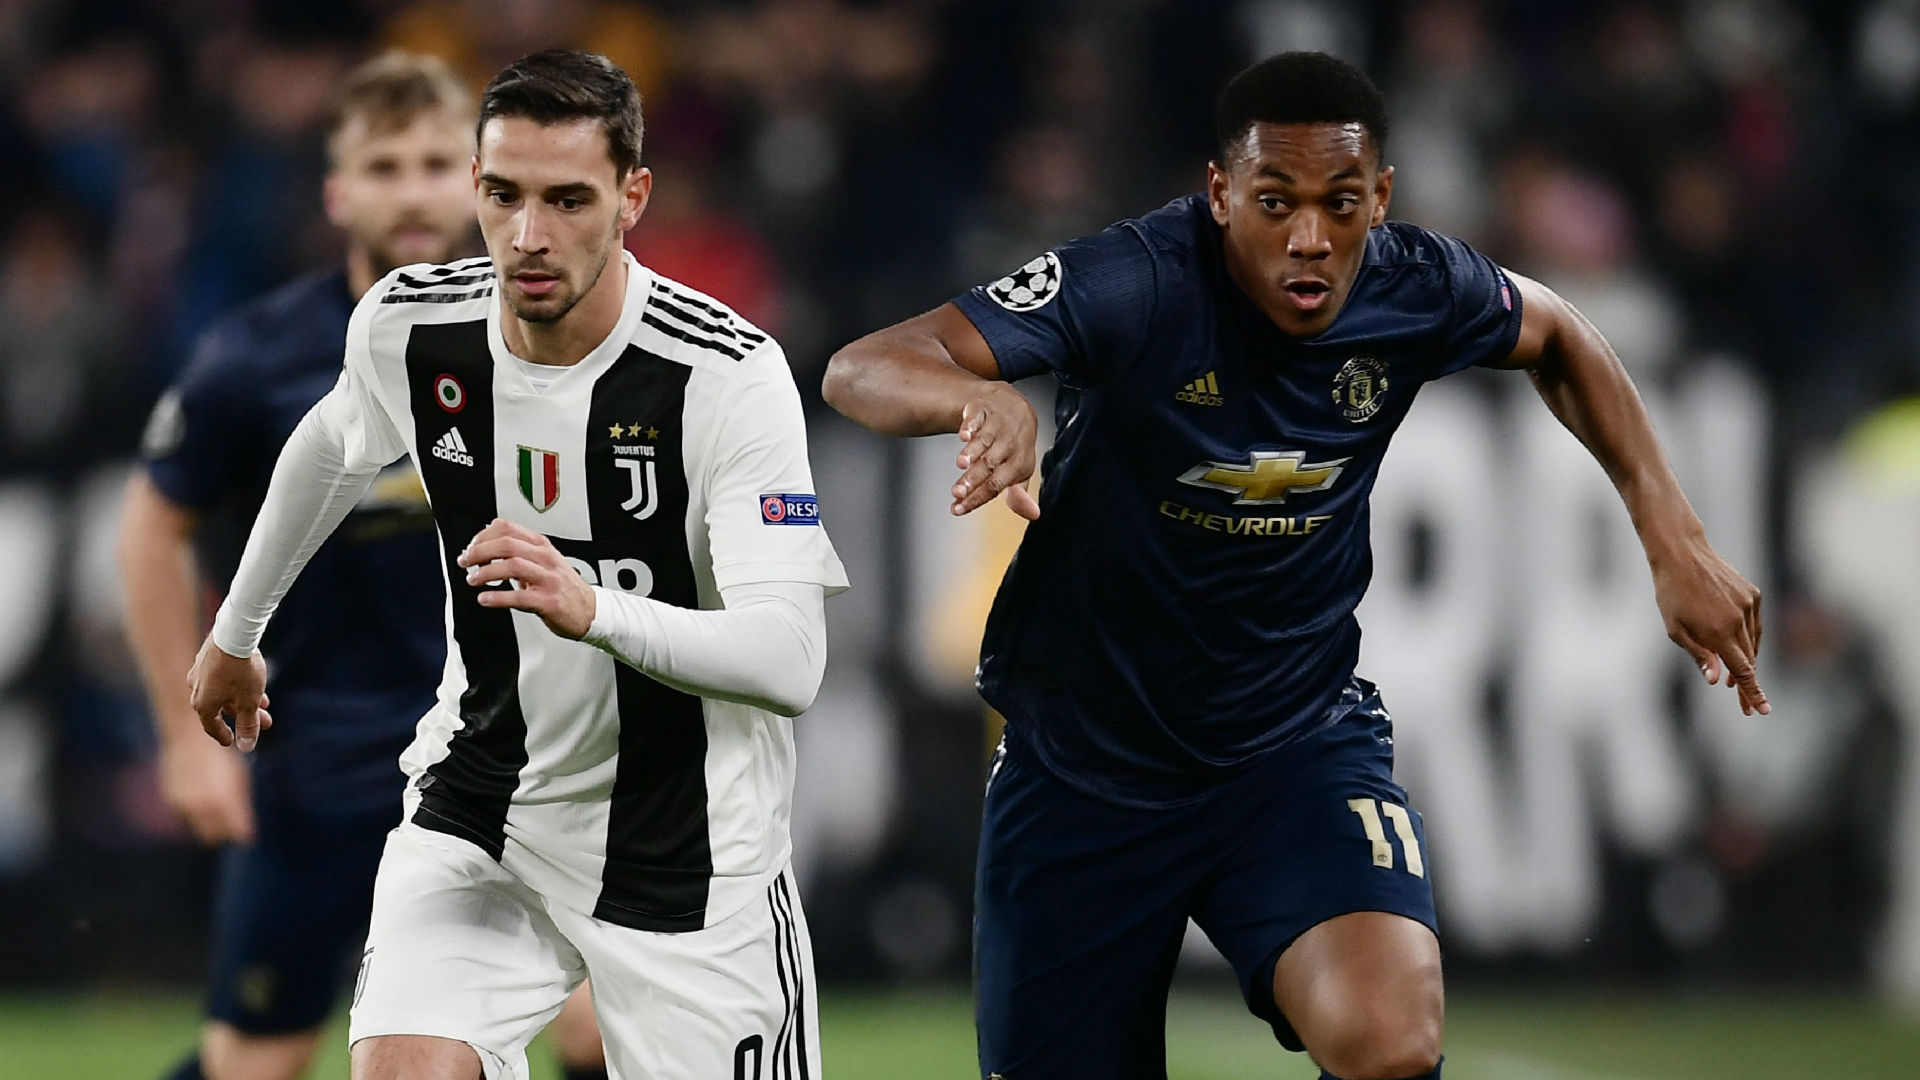 Man United's Martial earns recall to France squad